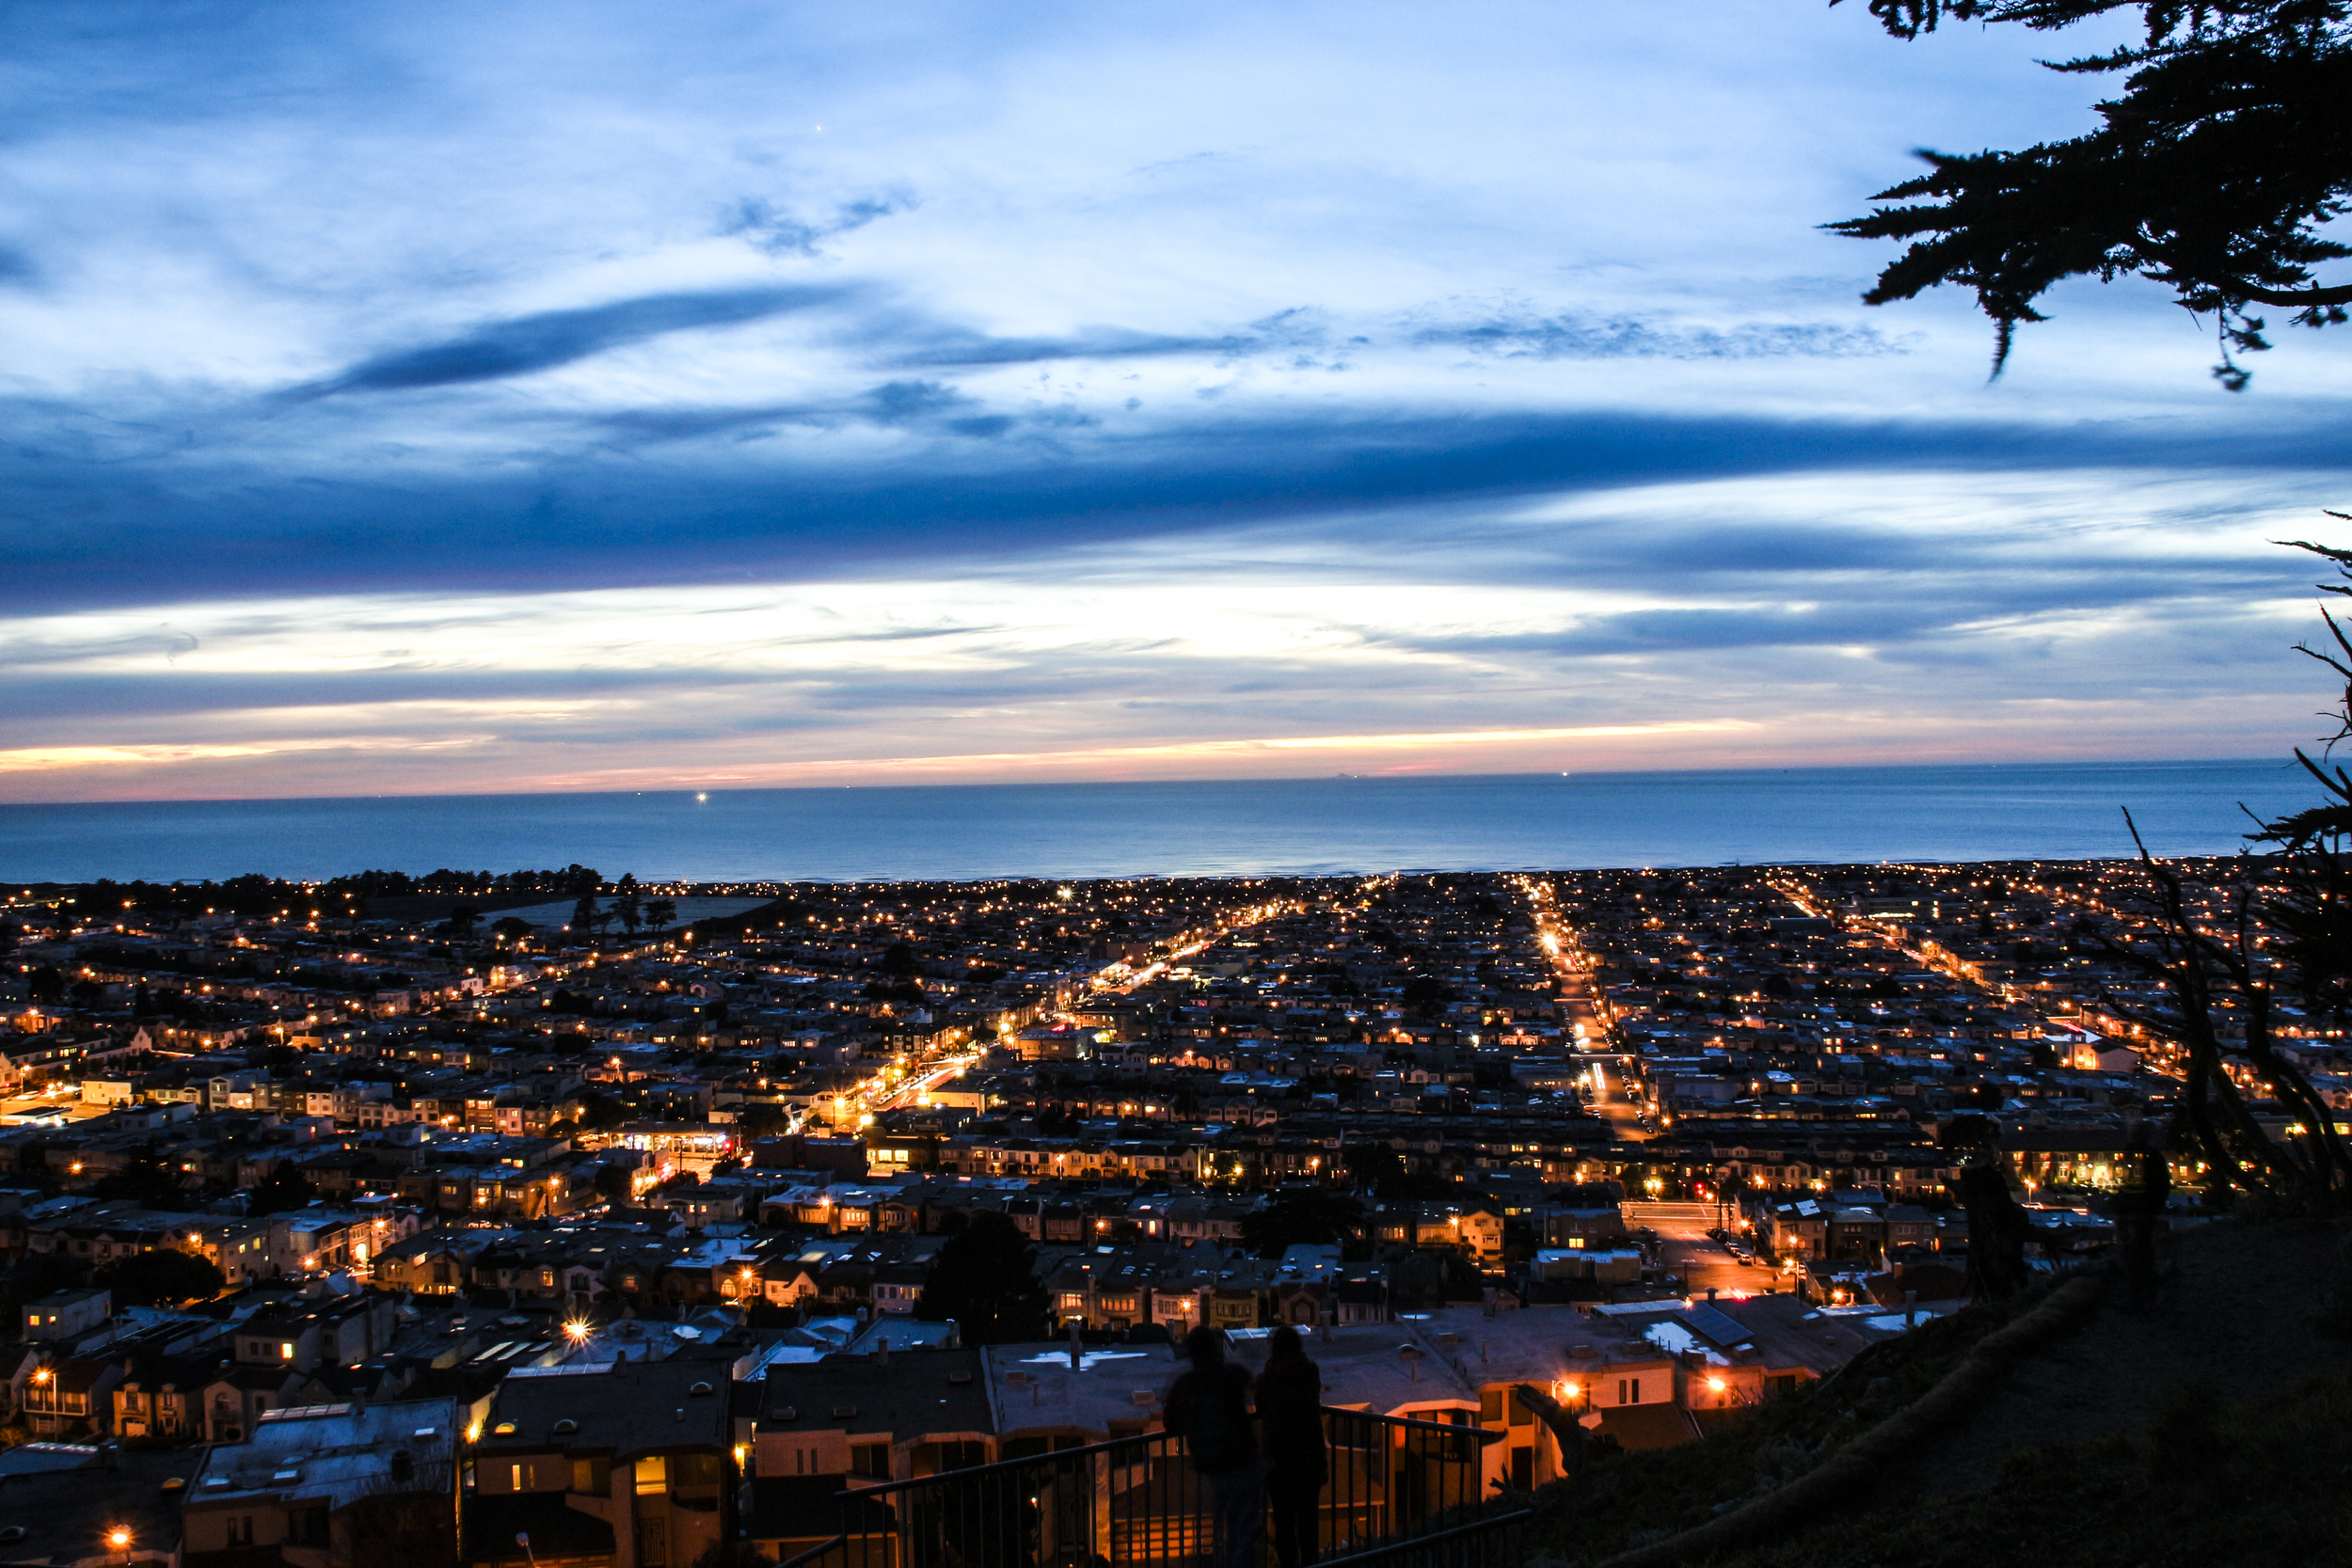 """One of the city's most secluded and romantic spots is Grand View Park (called """"Turtle Hill"""" by the locals), situated on a hill surrounded by 14th and 15th Avenues and Noriega Street. Offering stunning 360-degree views of San Francisco, this park is perfect for sunset watching."""